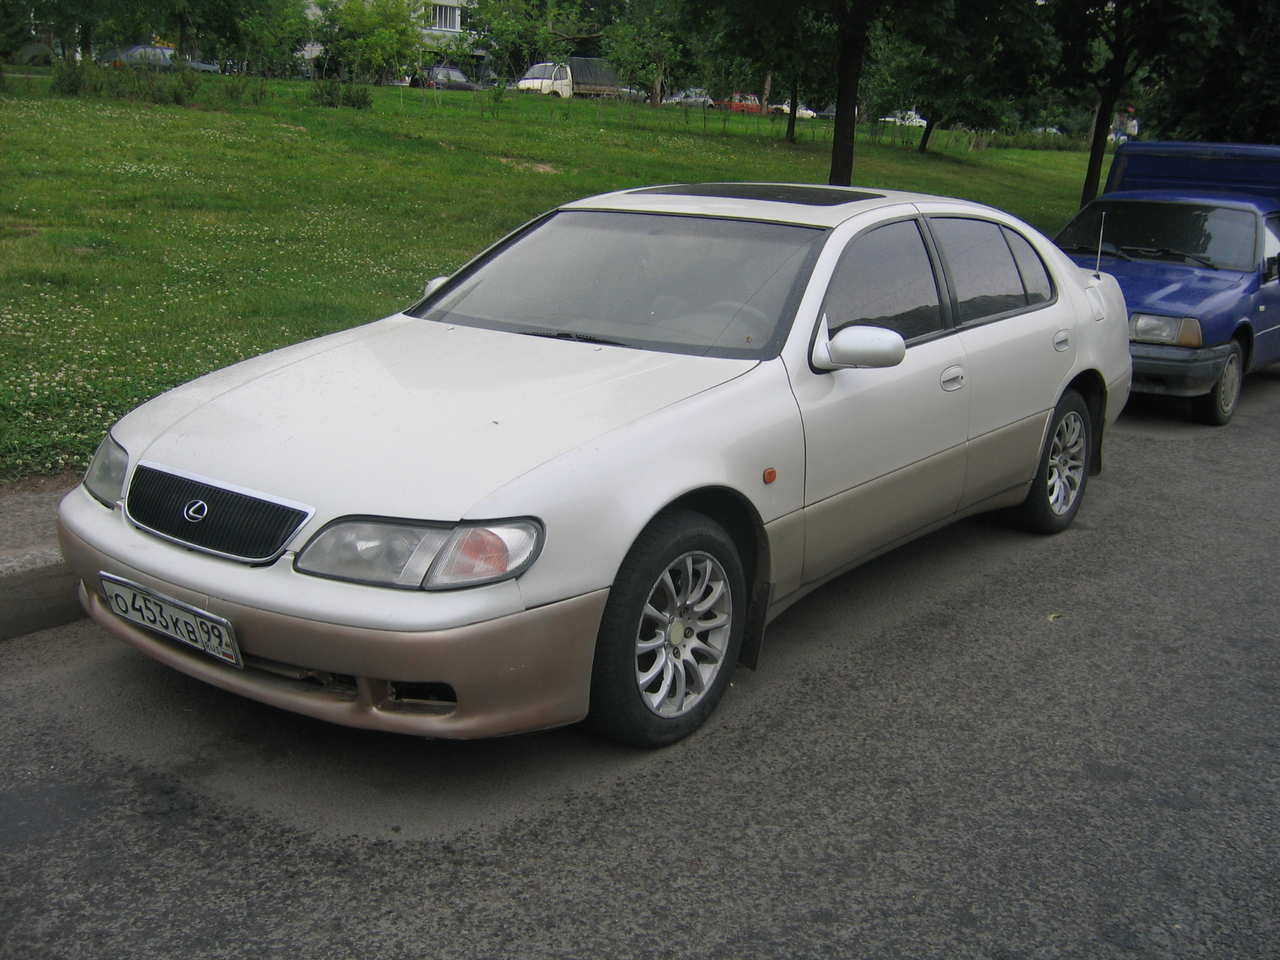 1996 lexus gs300 pics 3 0 gasoline fr or rr automatic. Black Bedroom Furniture Sets. Home Design Ideas